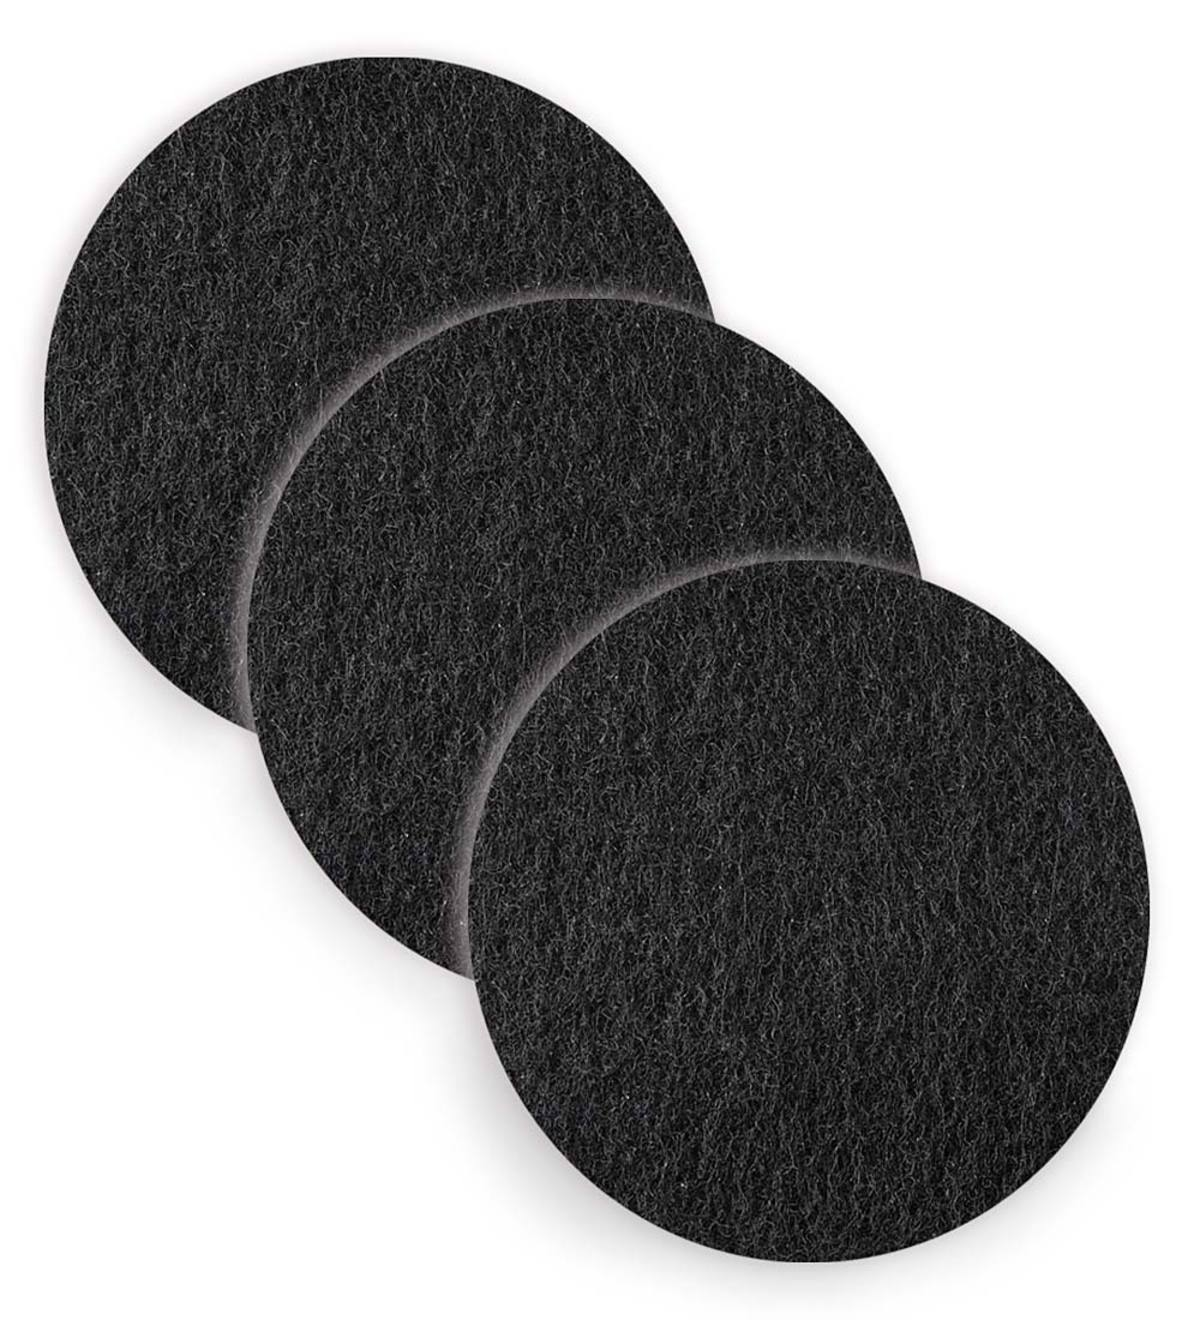 Three-pack, .9-Gallon Ceramic Replacement Filters